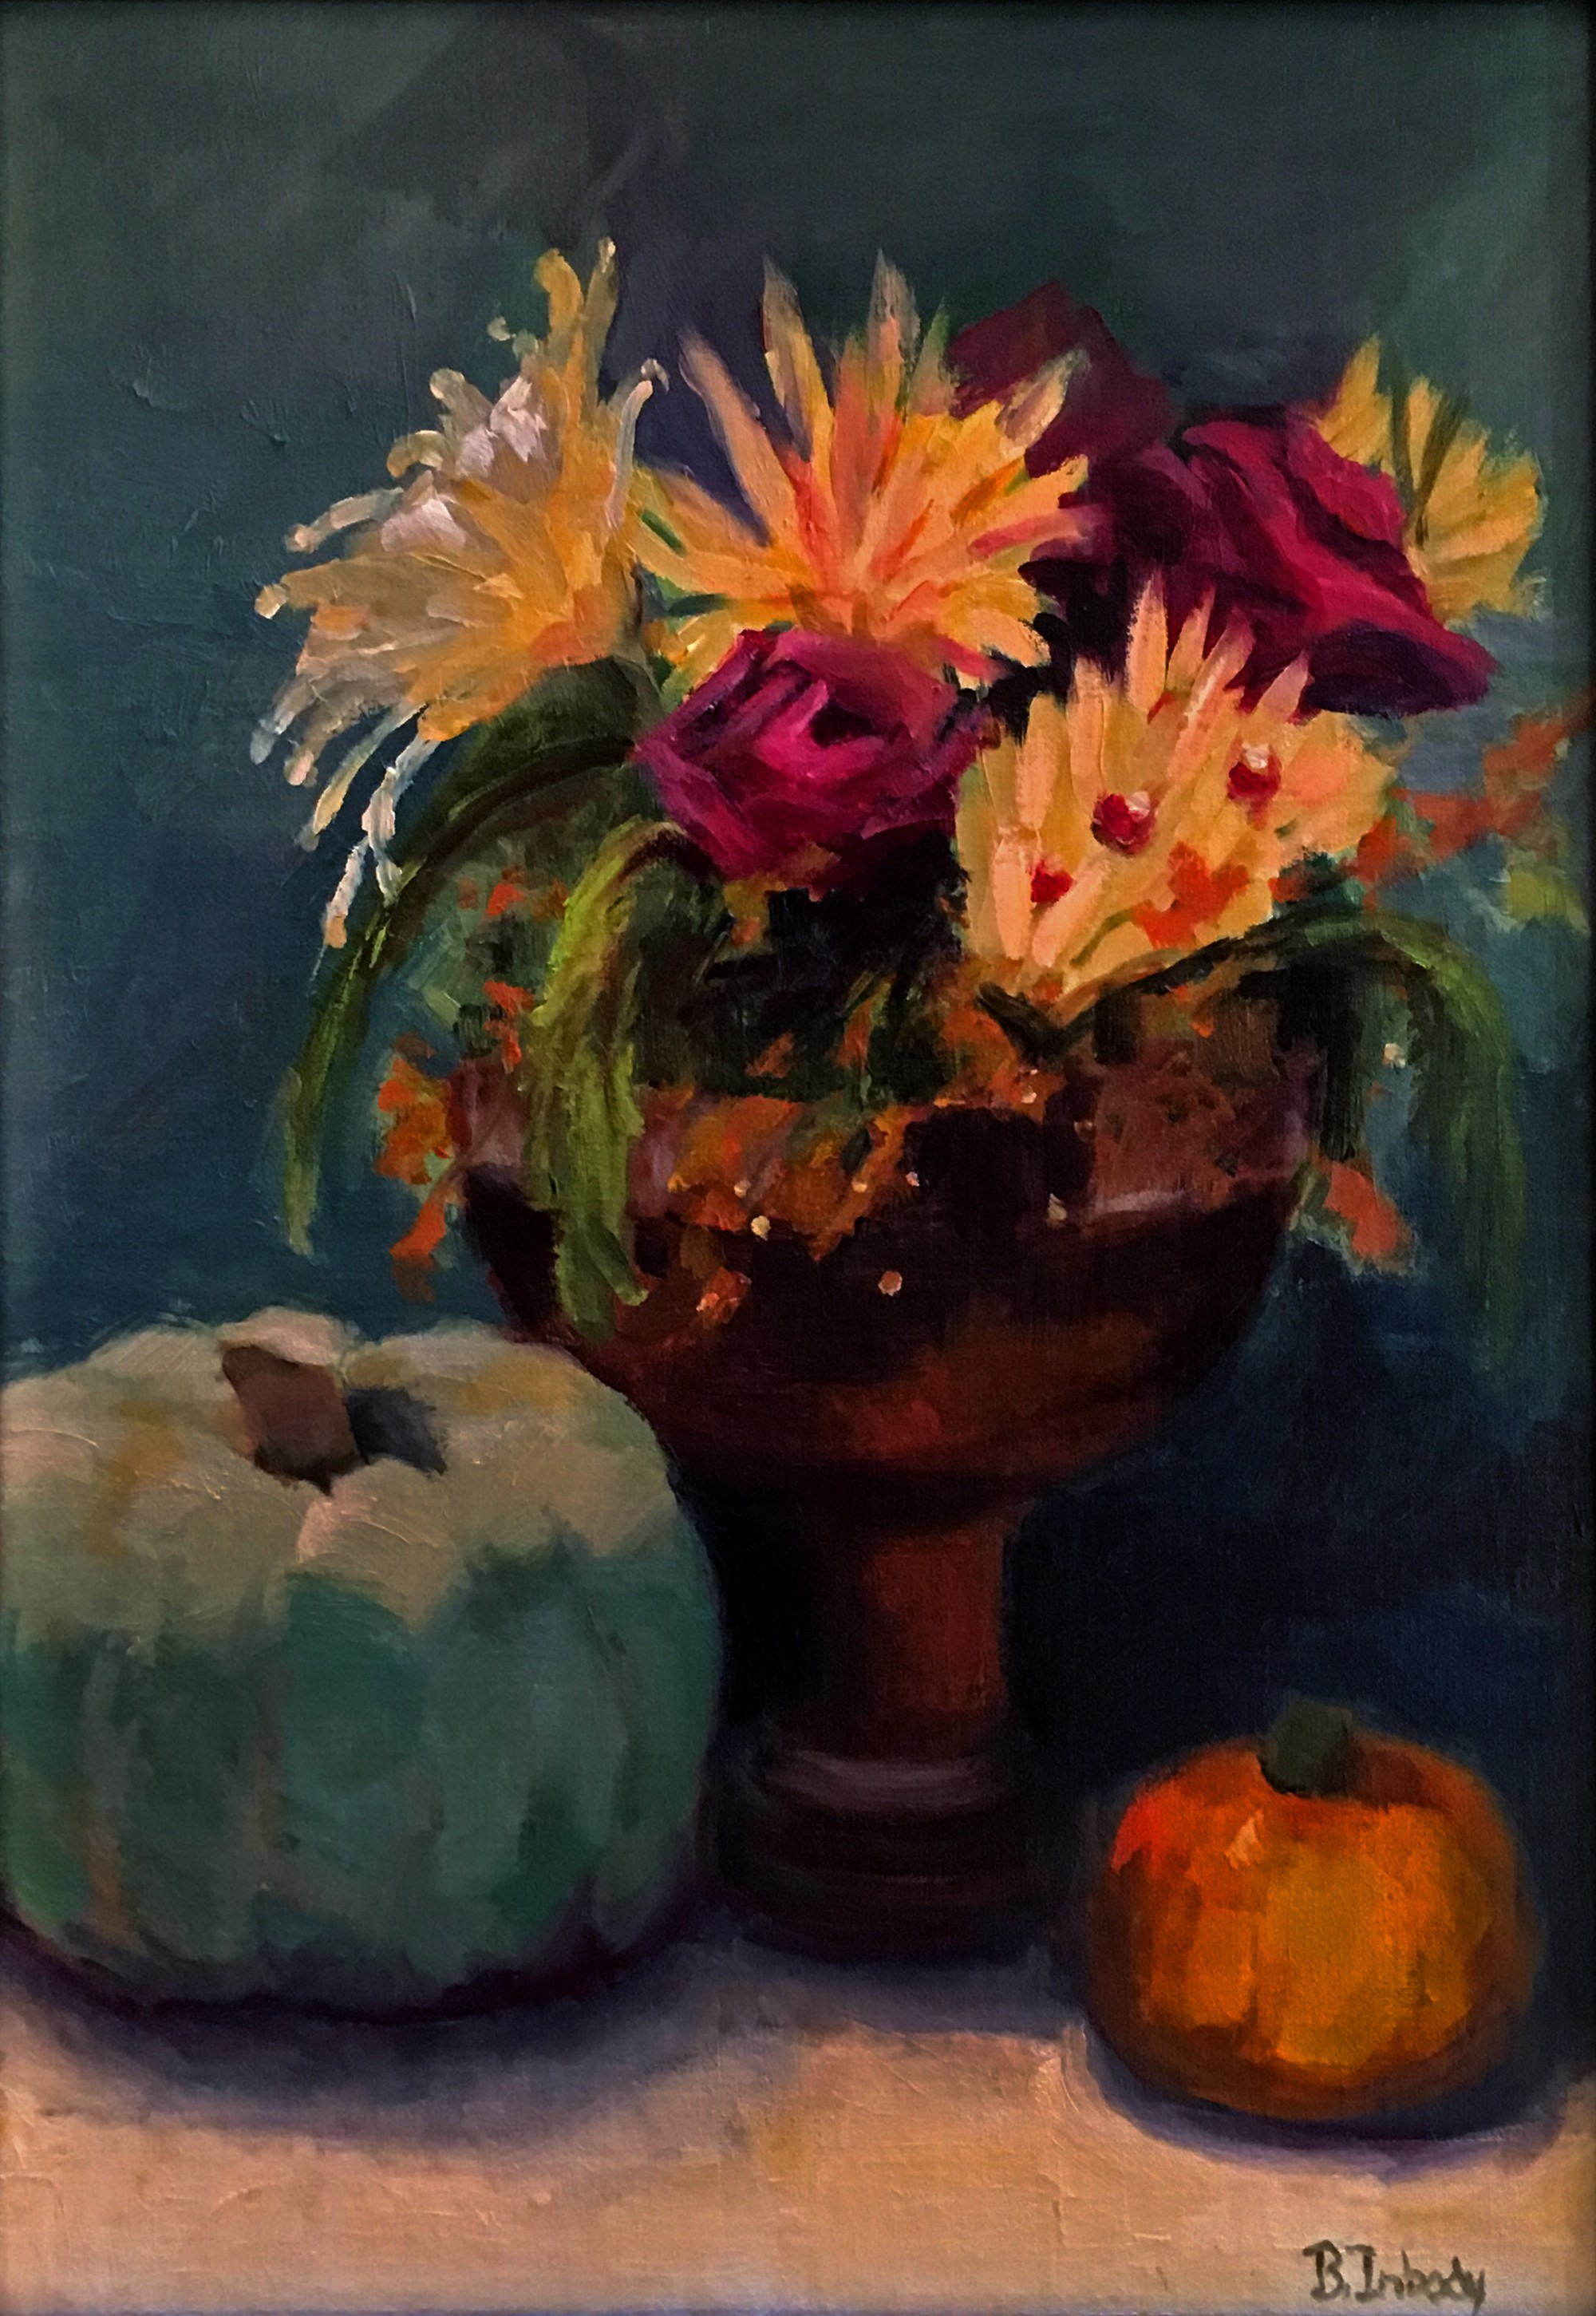 Floral with Pumpkins by B. Inbody